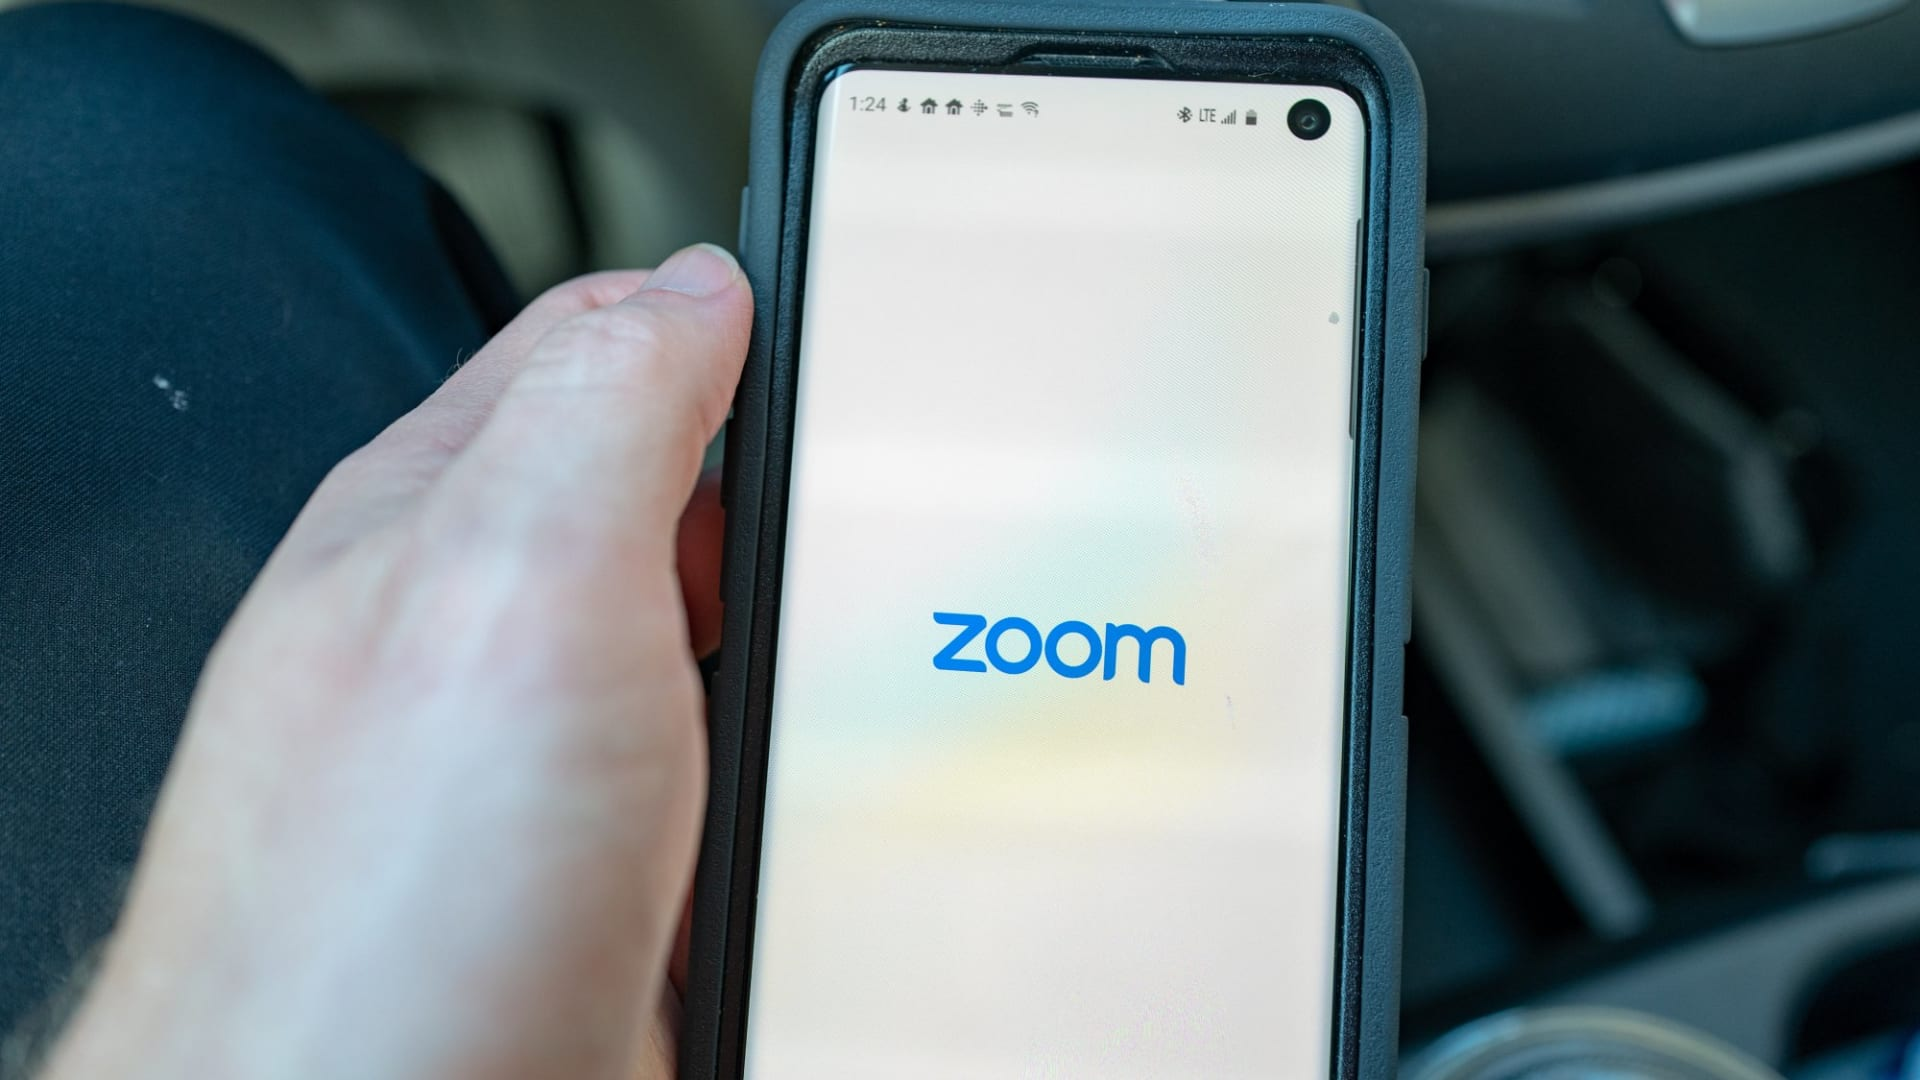 Zoom Is Making a Major Change to Protect Security. What You Should Know